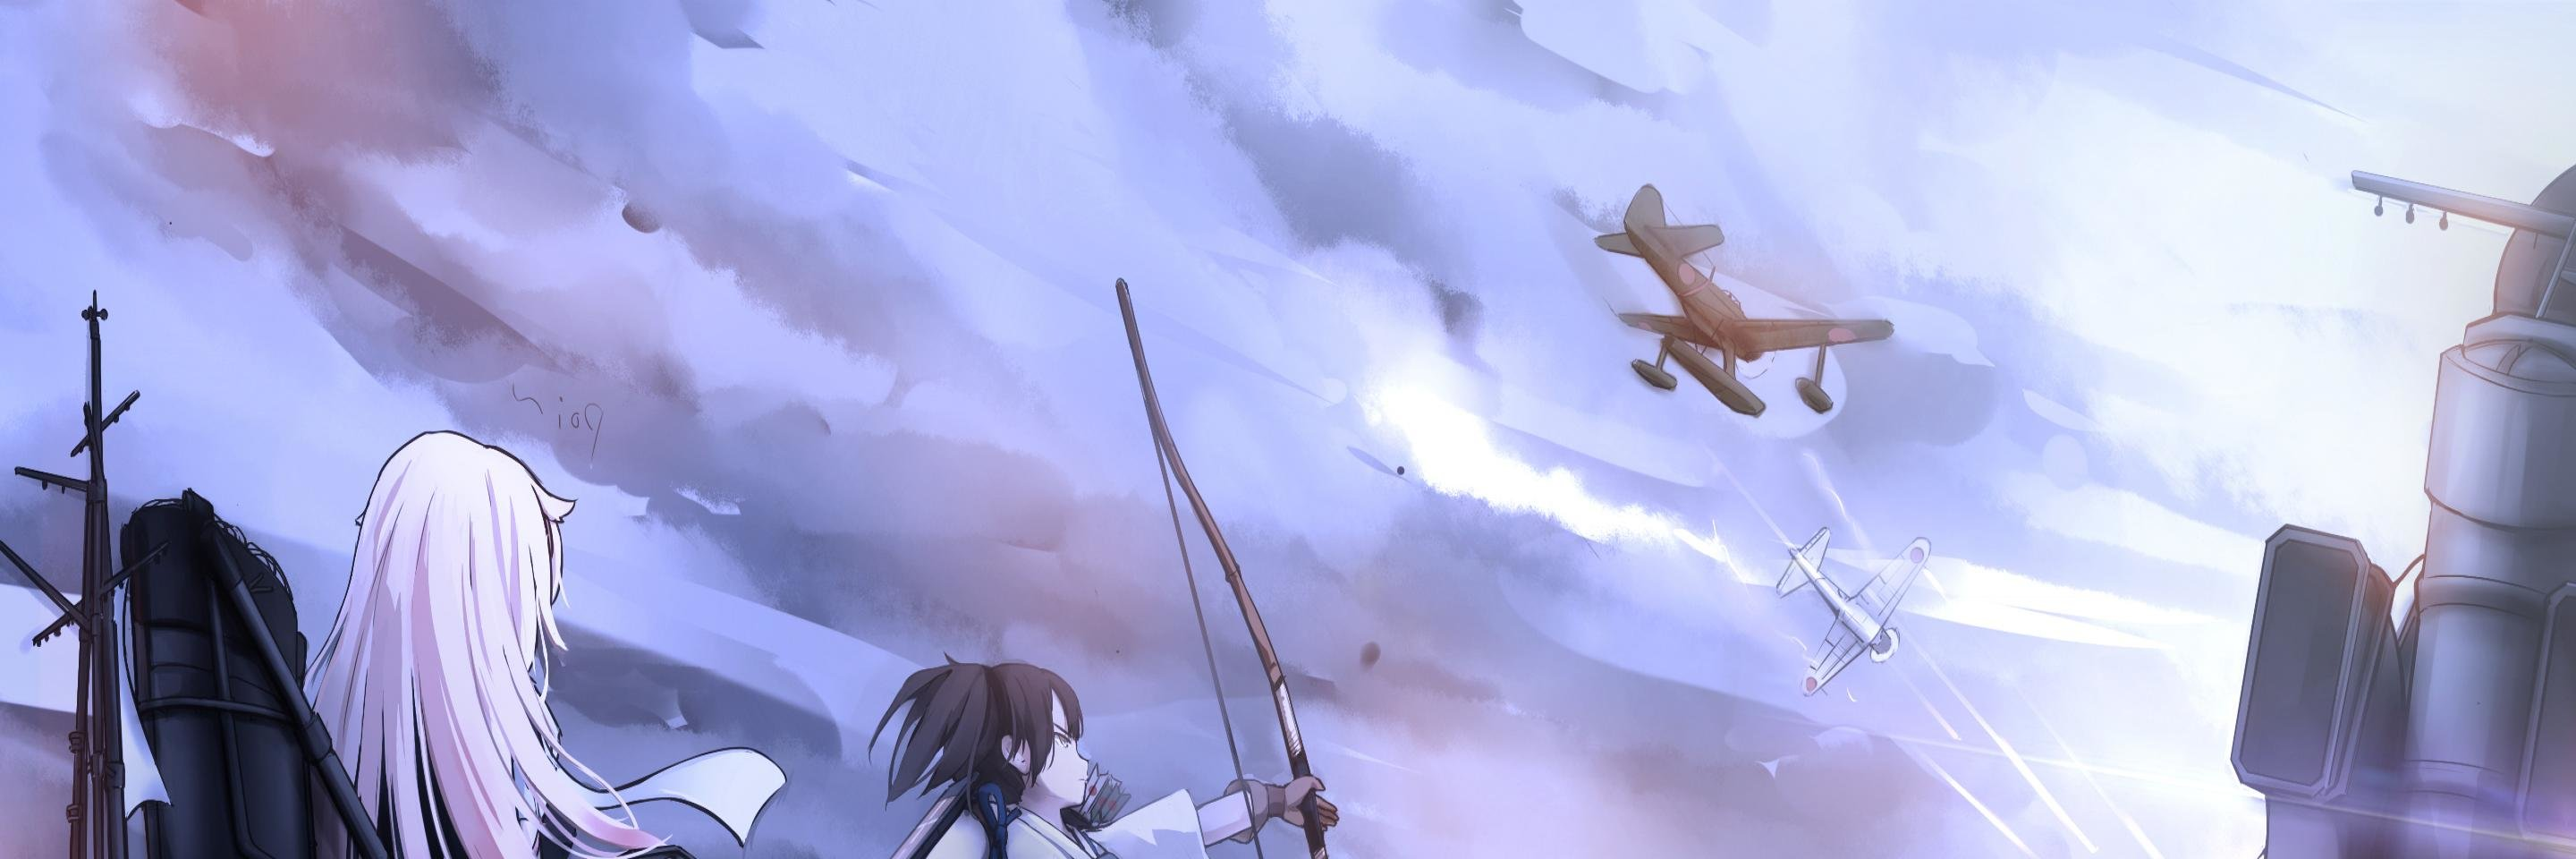 Download dual monitor 2880x960 Kantai Collection PC background ID:331093 for free